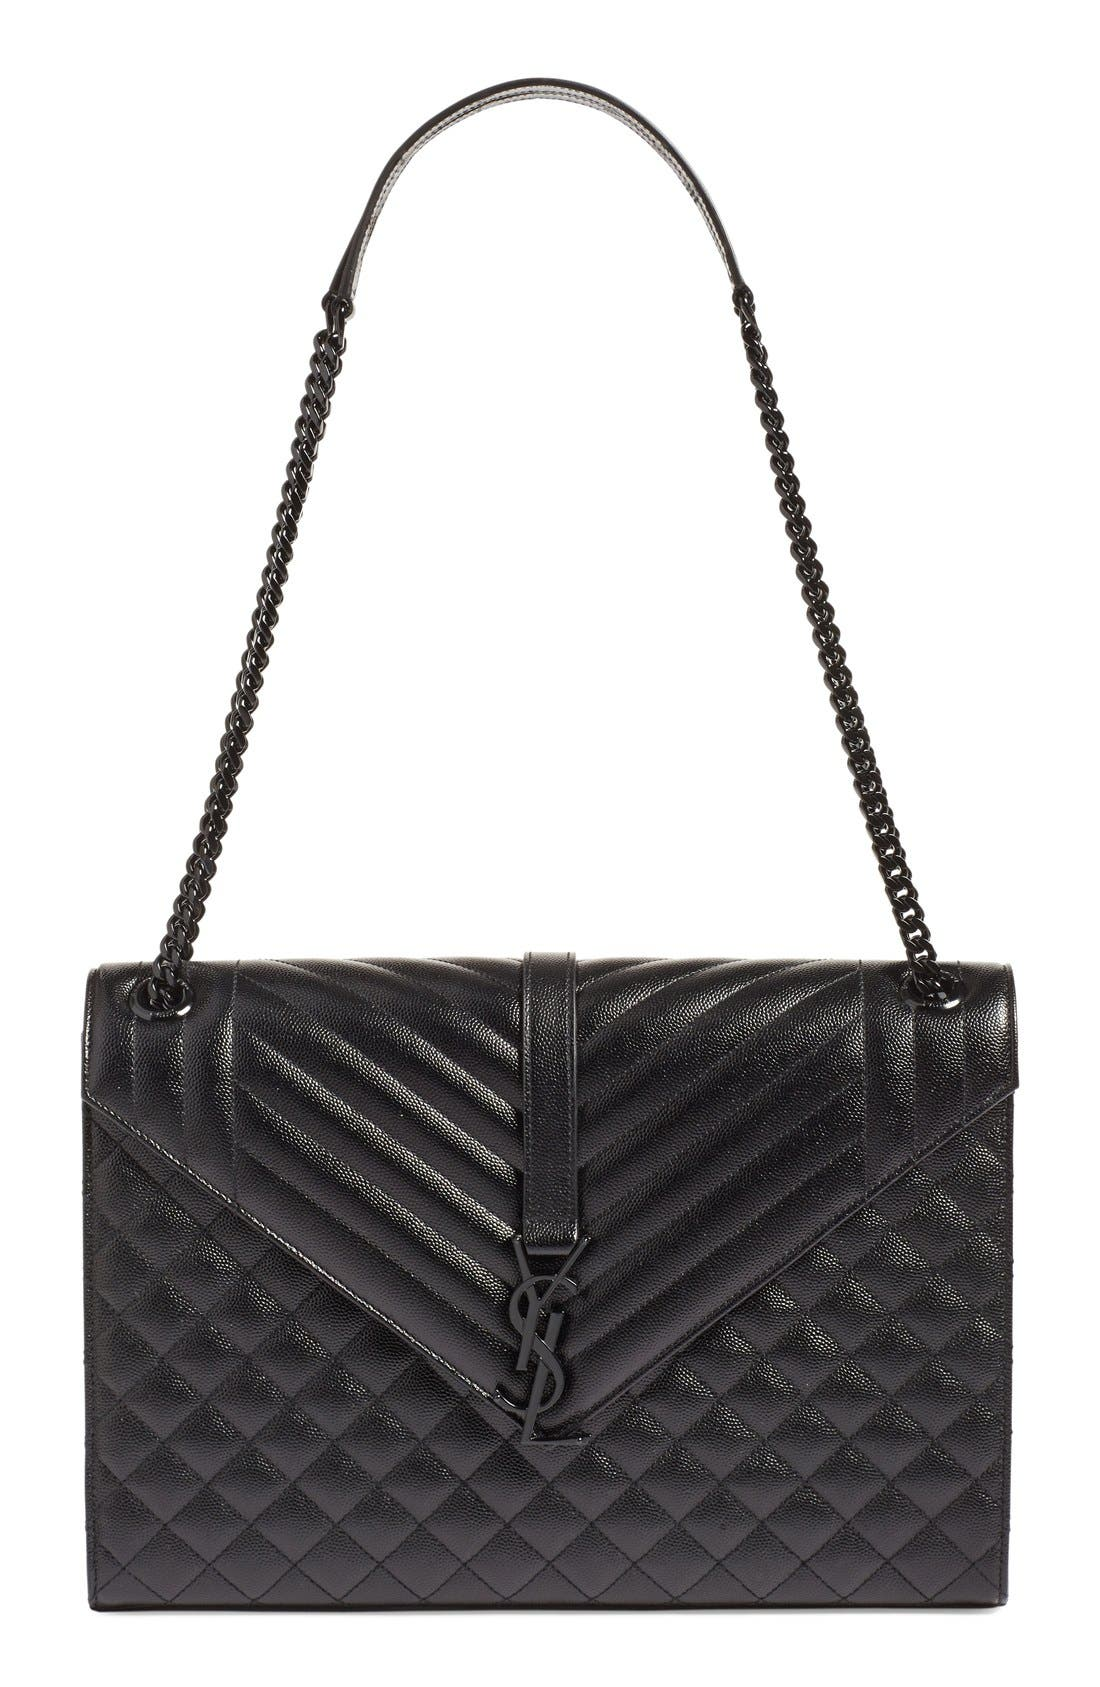 Saint Laurent 'Medium Monogram' Chevron Quilted Leather Shoulder Bag